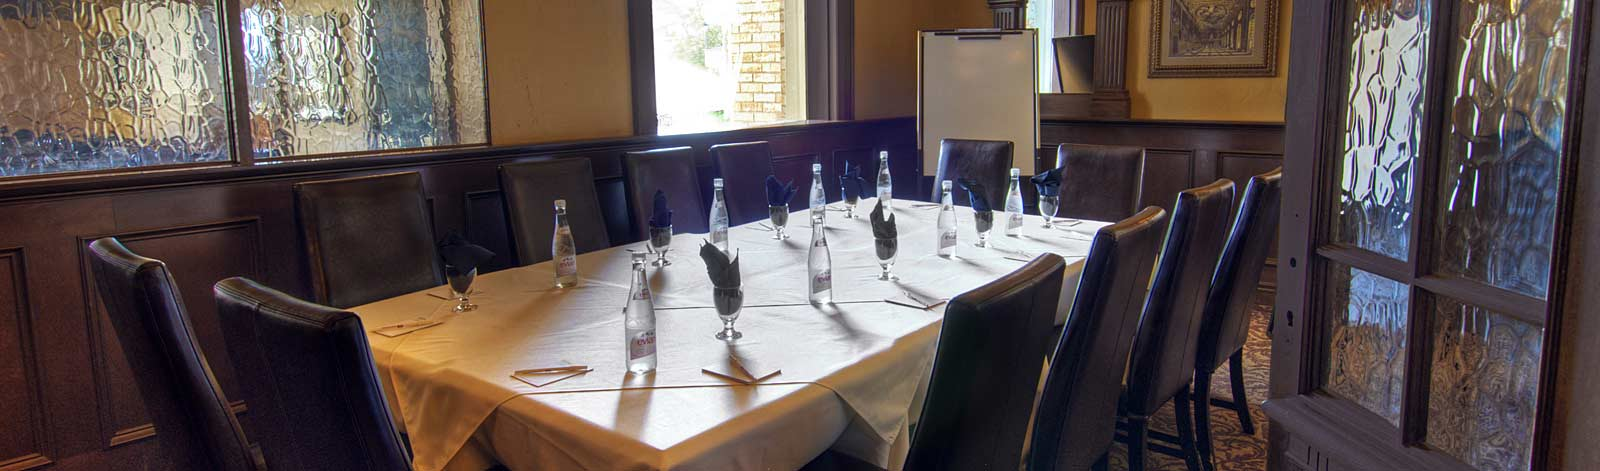 Private Dining at The Parlour Inn in Stratford Ontario